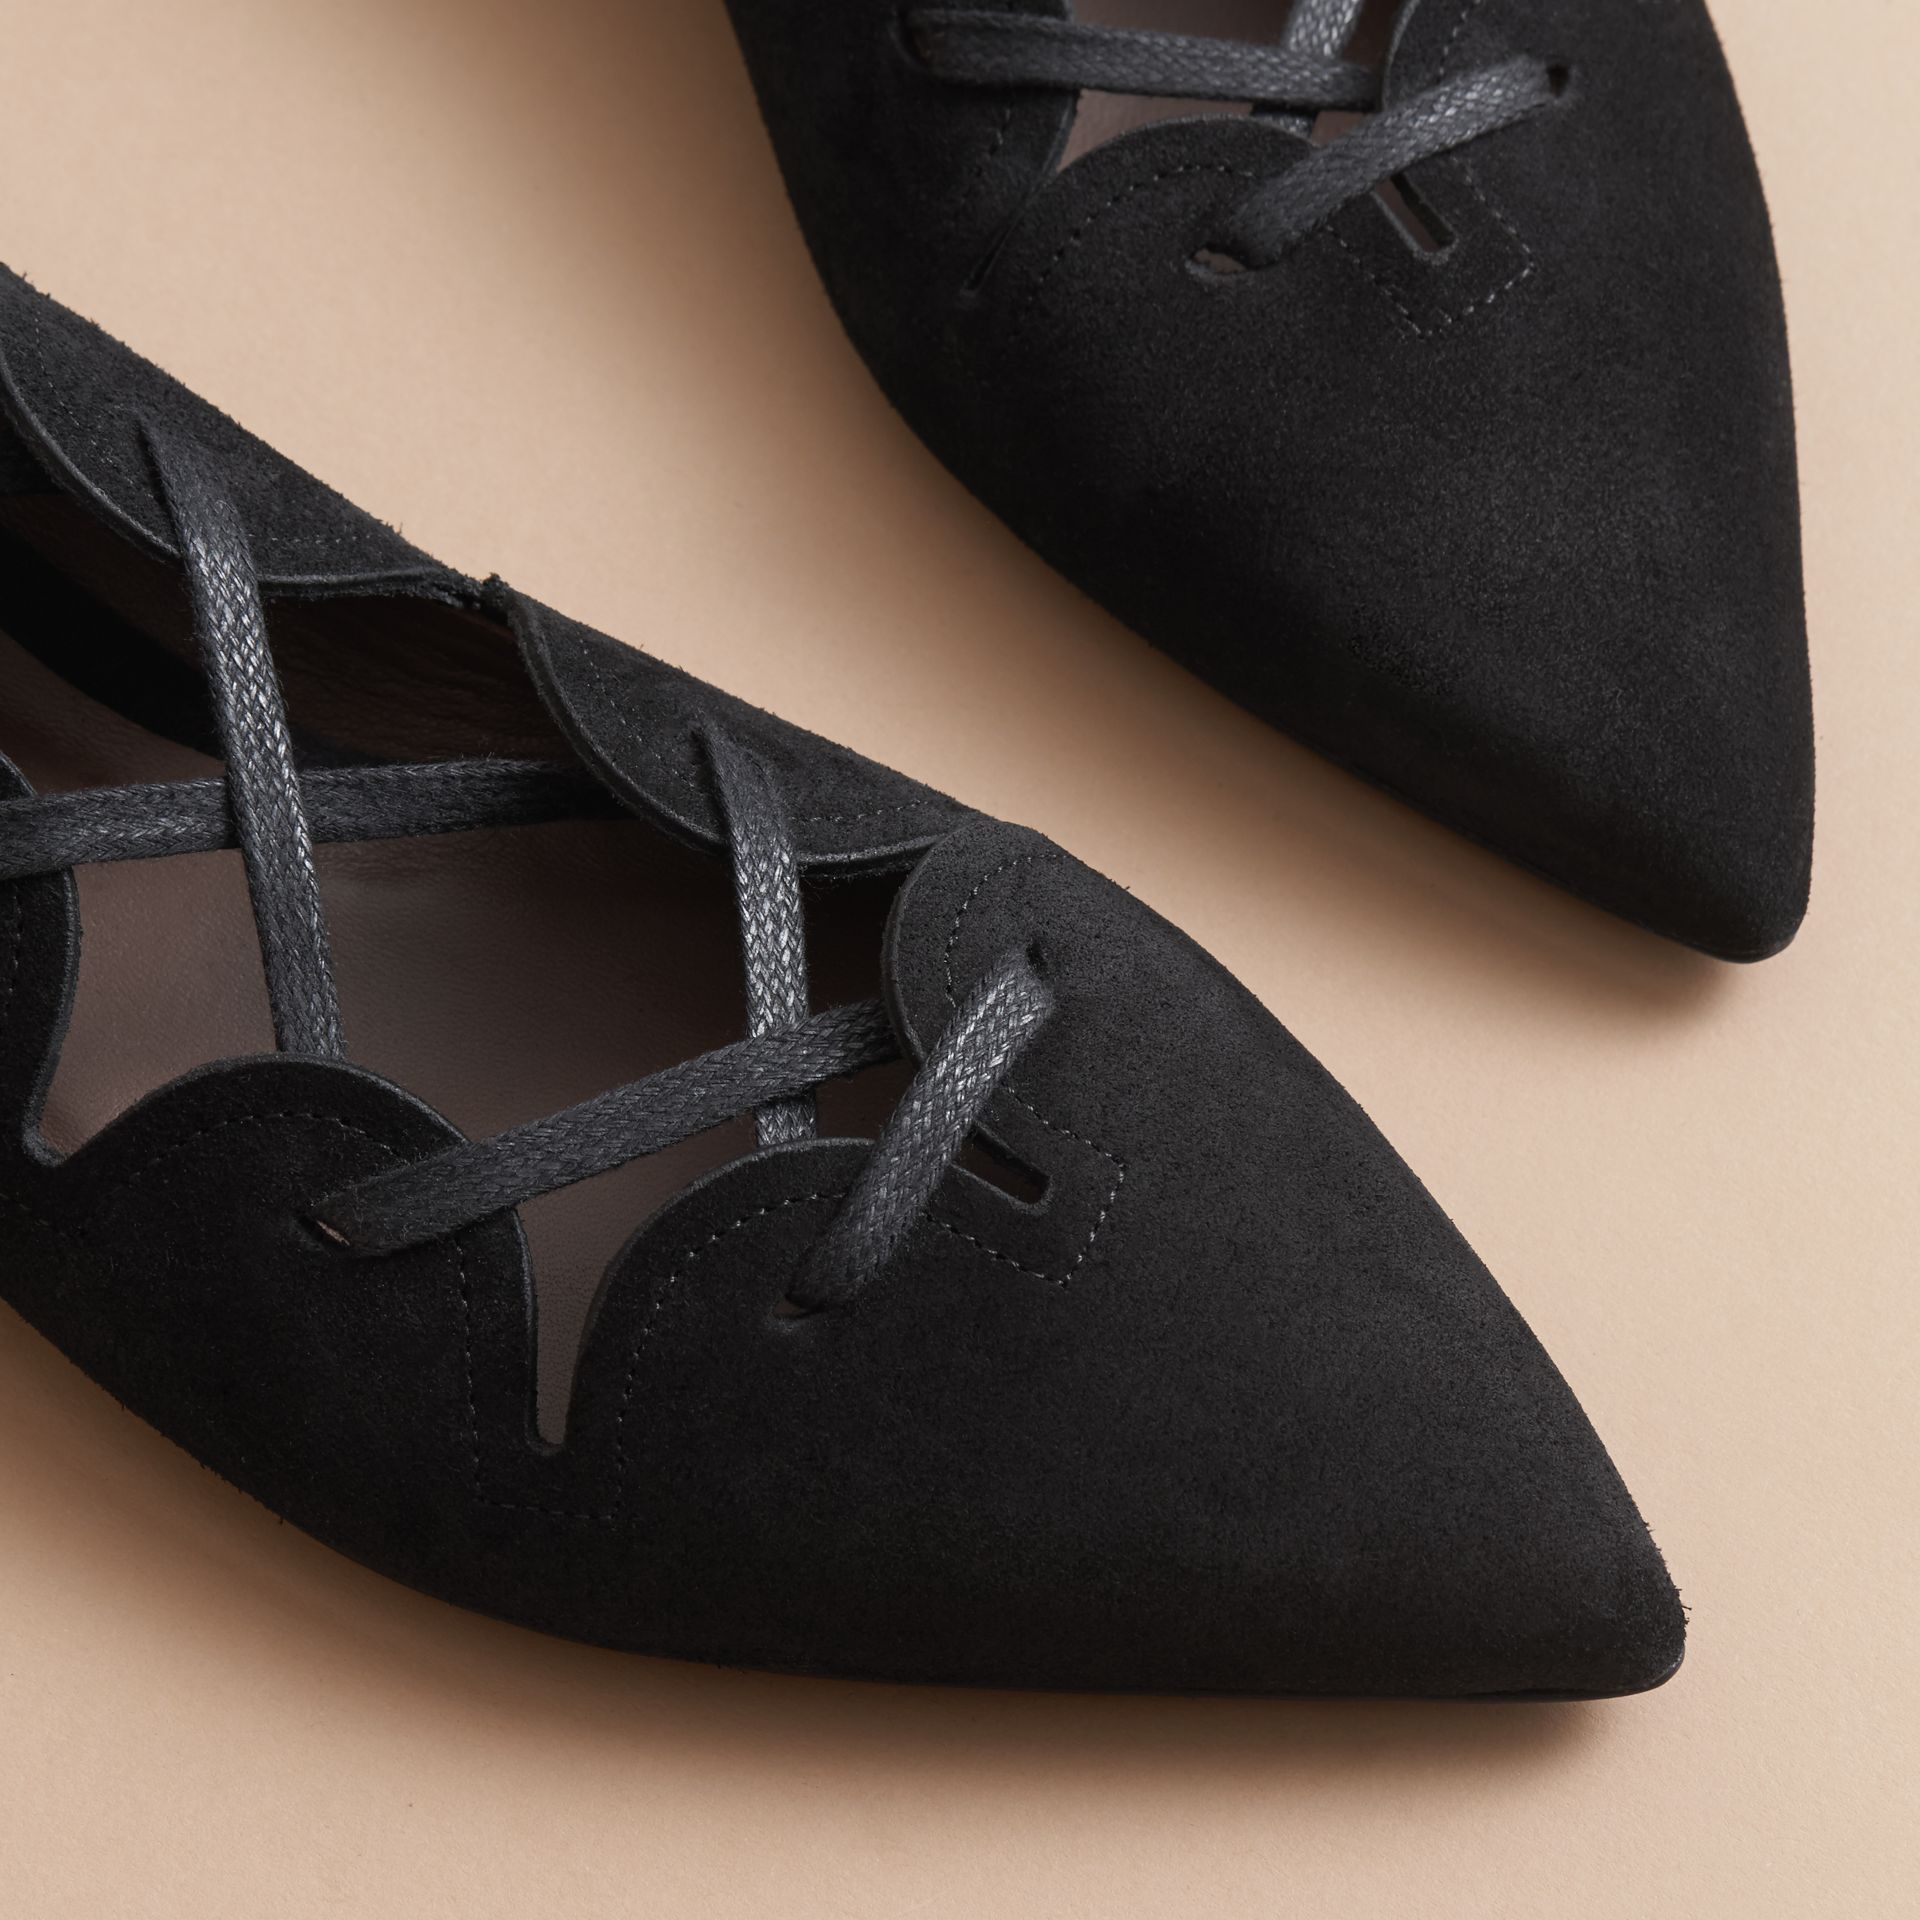 Scalloped Suede Lace-up Ballerinas in Black - Women | Burberry United States - gallery image 5